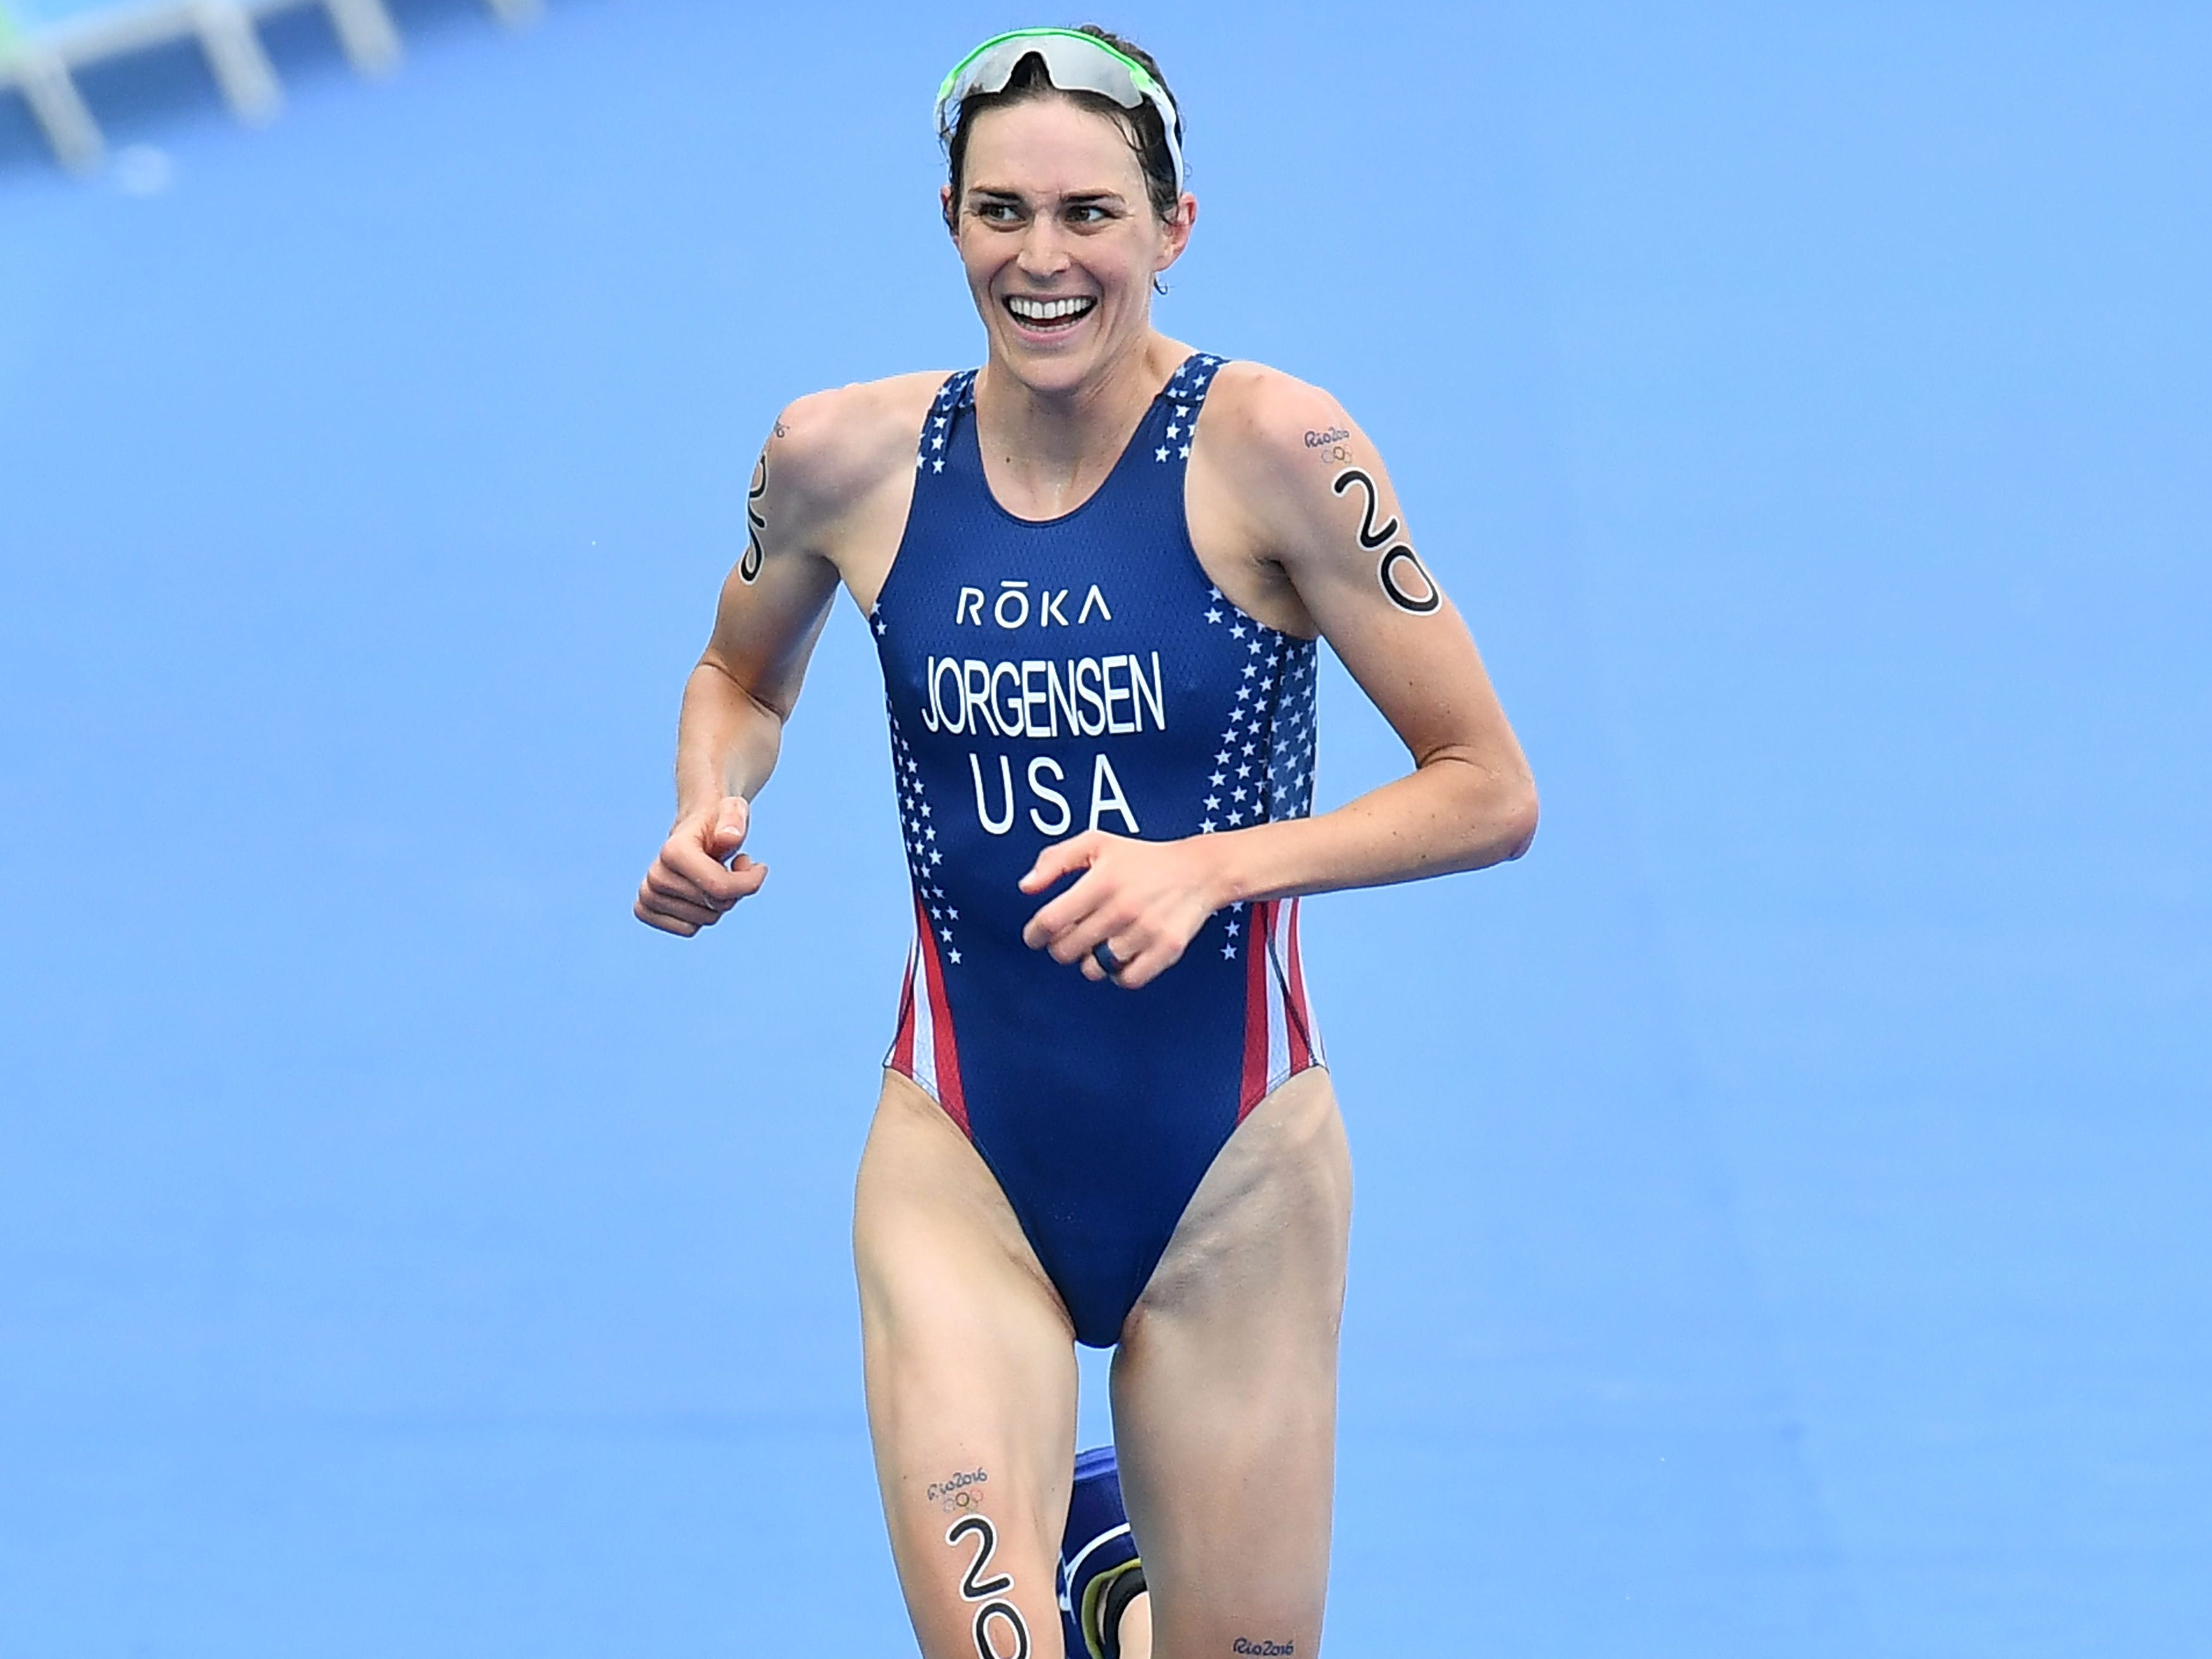 USA's Gwen Jorgensen runs to the finish line to win the gold medal in the women's triathlon at Fort Copacabana during the Rio 2016 Olympic Games in Rio de Janeiro on August 20, 2016. / AFP PHOTO / Leon NEALLEON NEAL/AFP/Getty Images